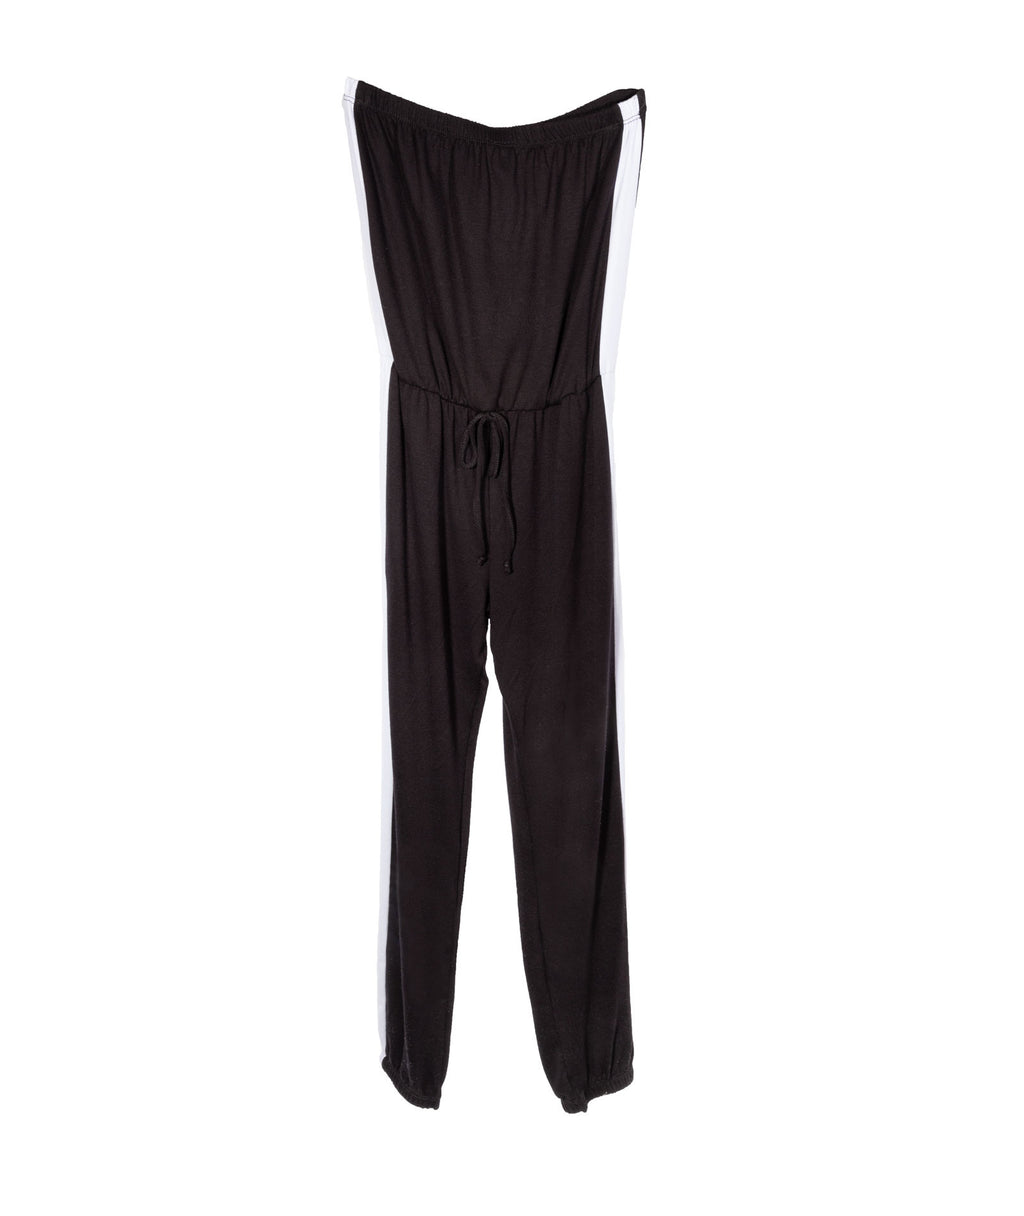 Pinc Premium Girls Black and White Tube Jumpsuit